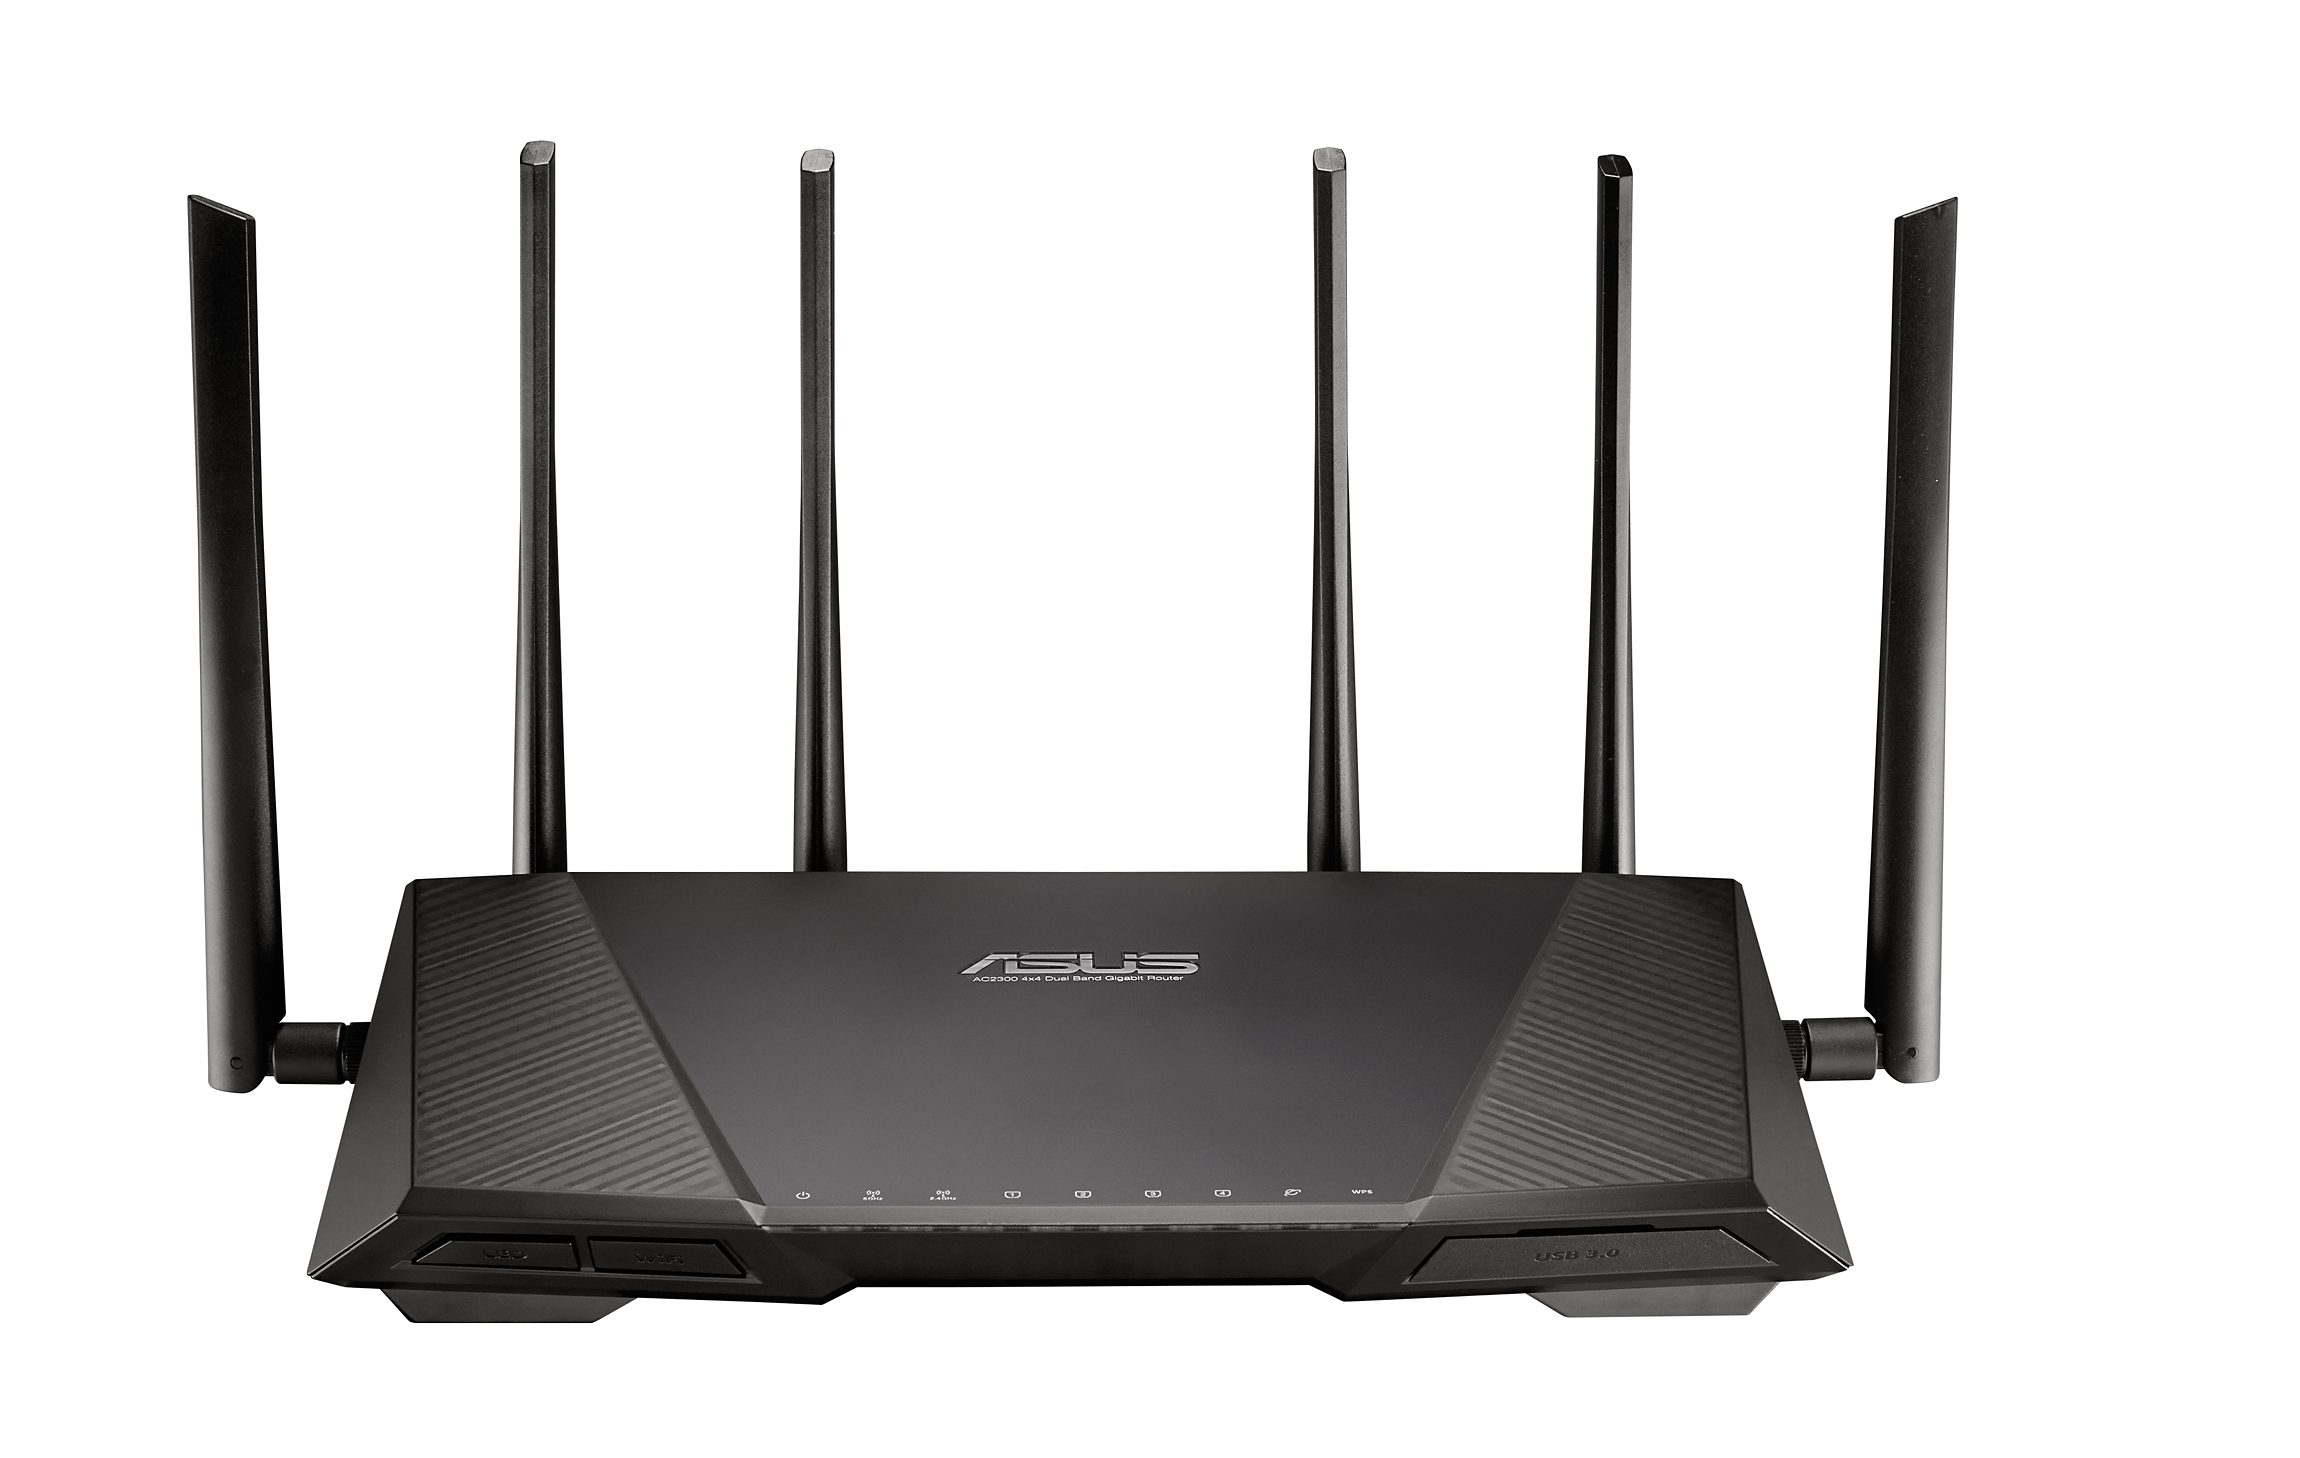 ASUS WLAN-Router mit AiRadar Technik »RT-AC3200«